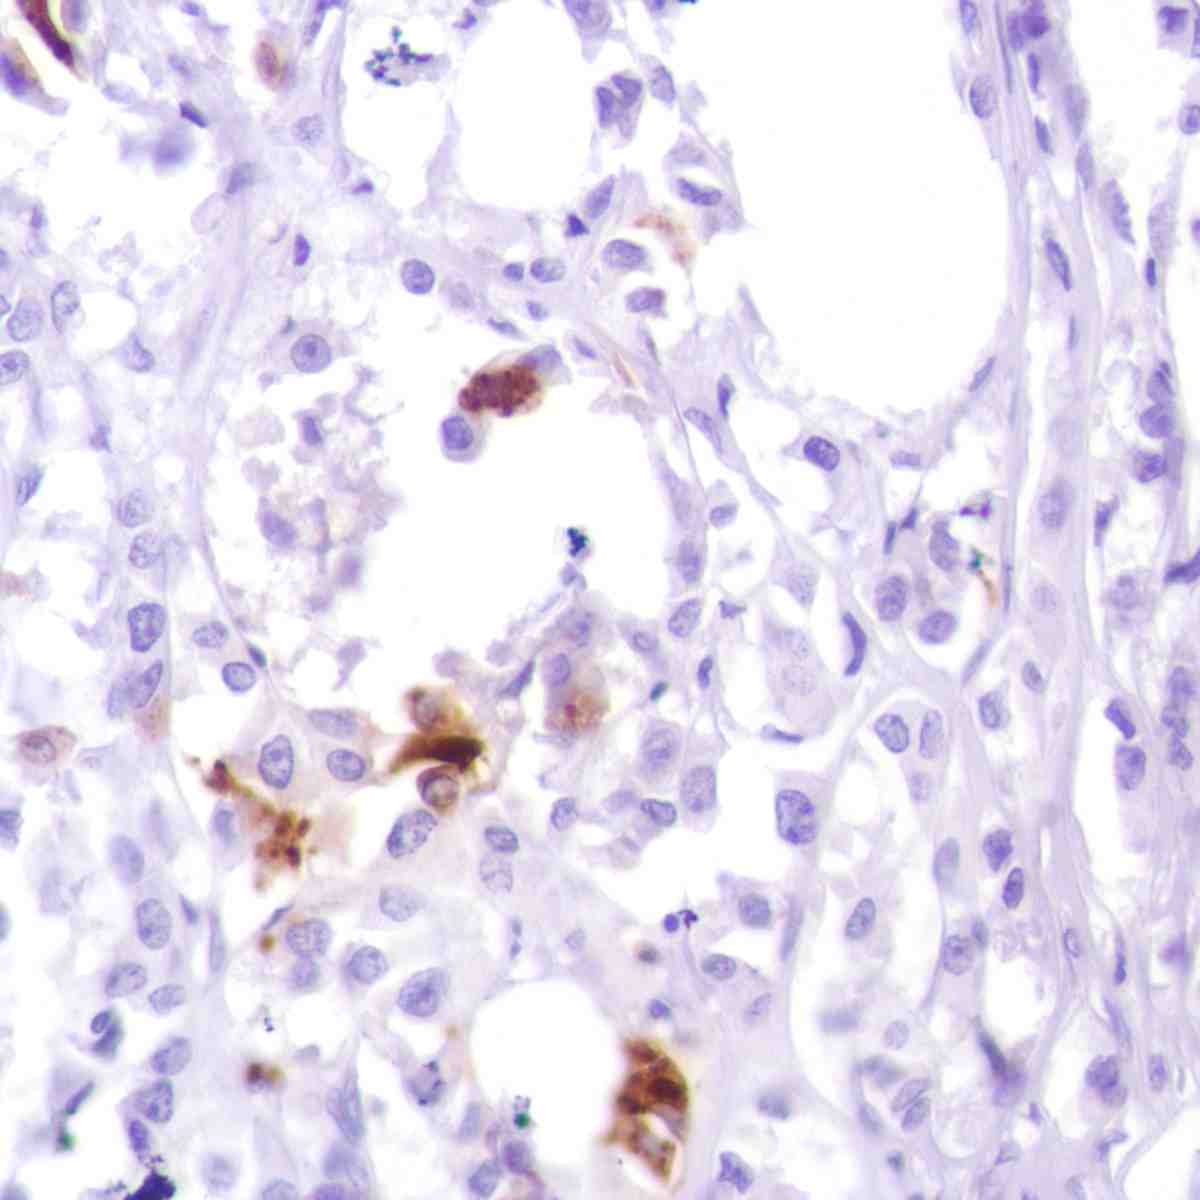 Human Breast Ductal Carcinoma stained with anti-GCDFP15 antibody2